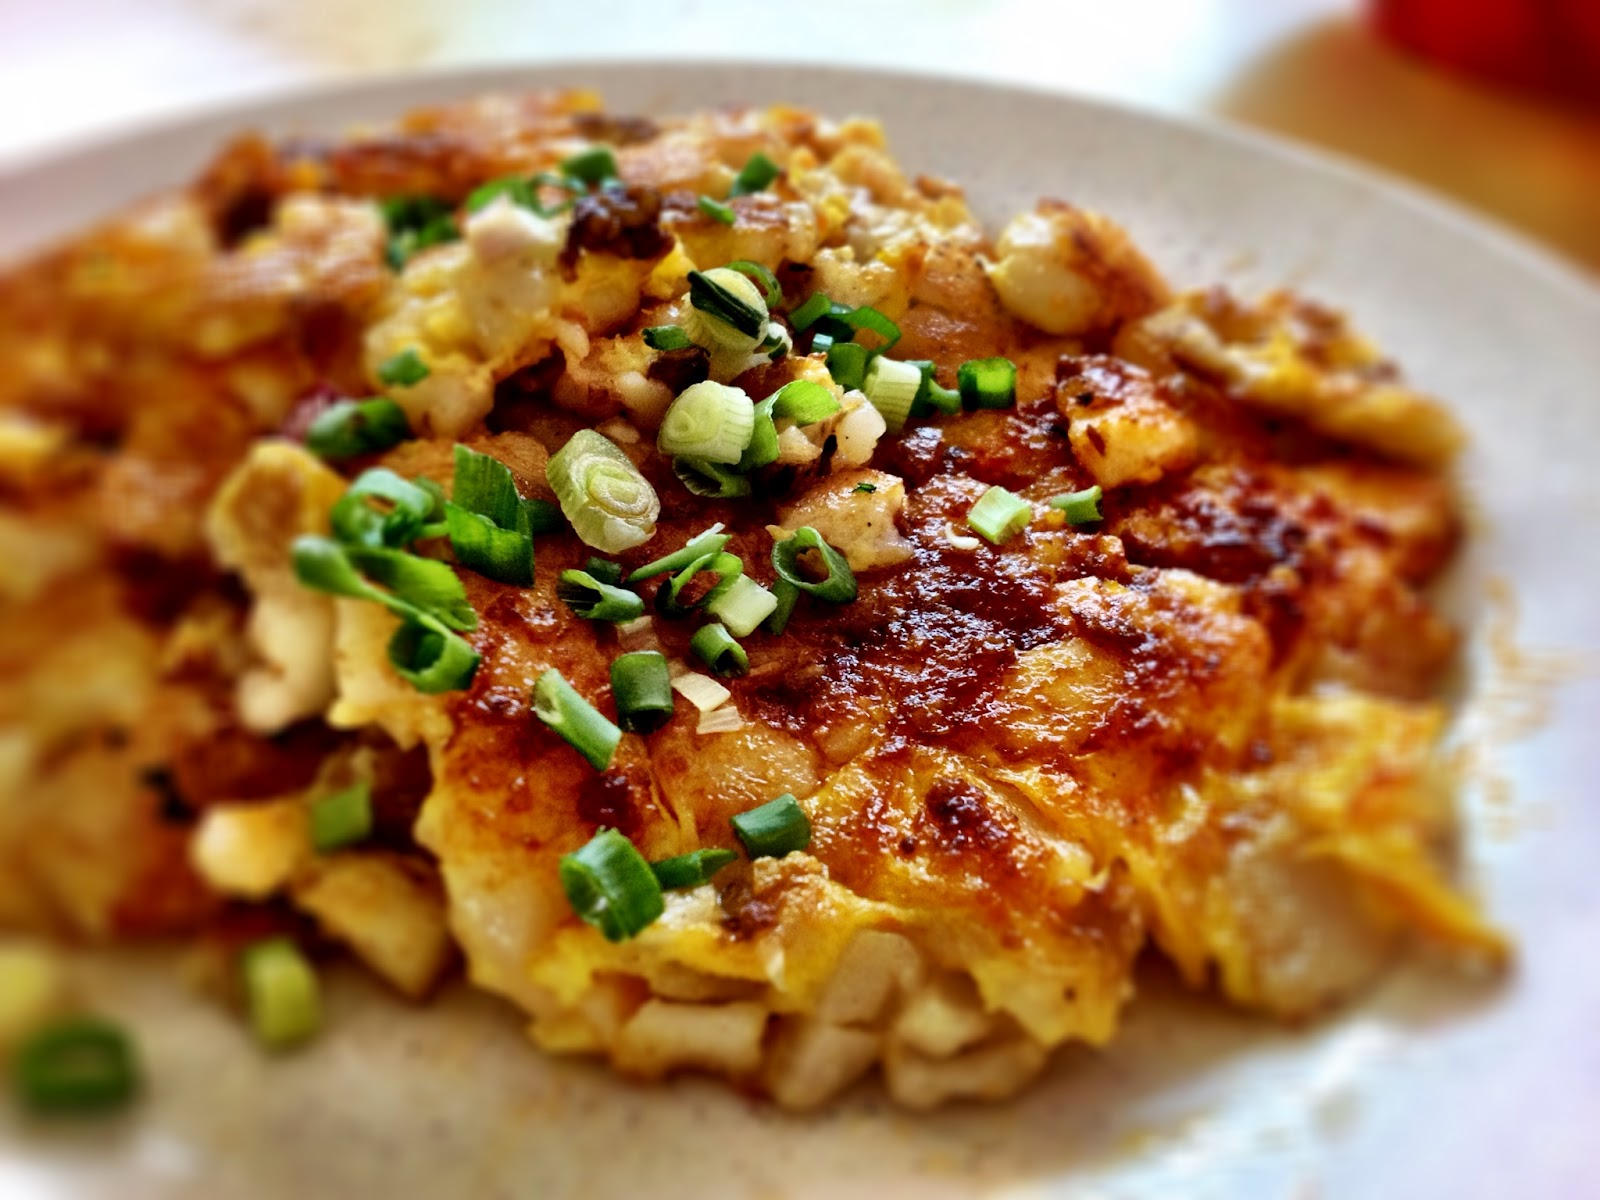 The Silver Chef: Hai Sheng Fried Carrot Cake at Bedok North